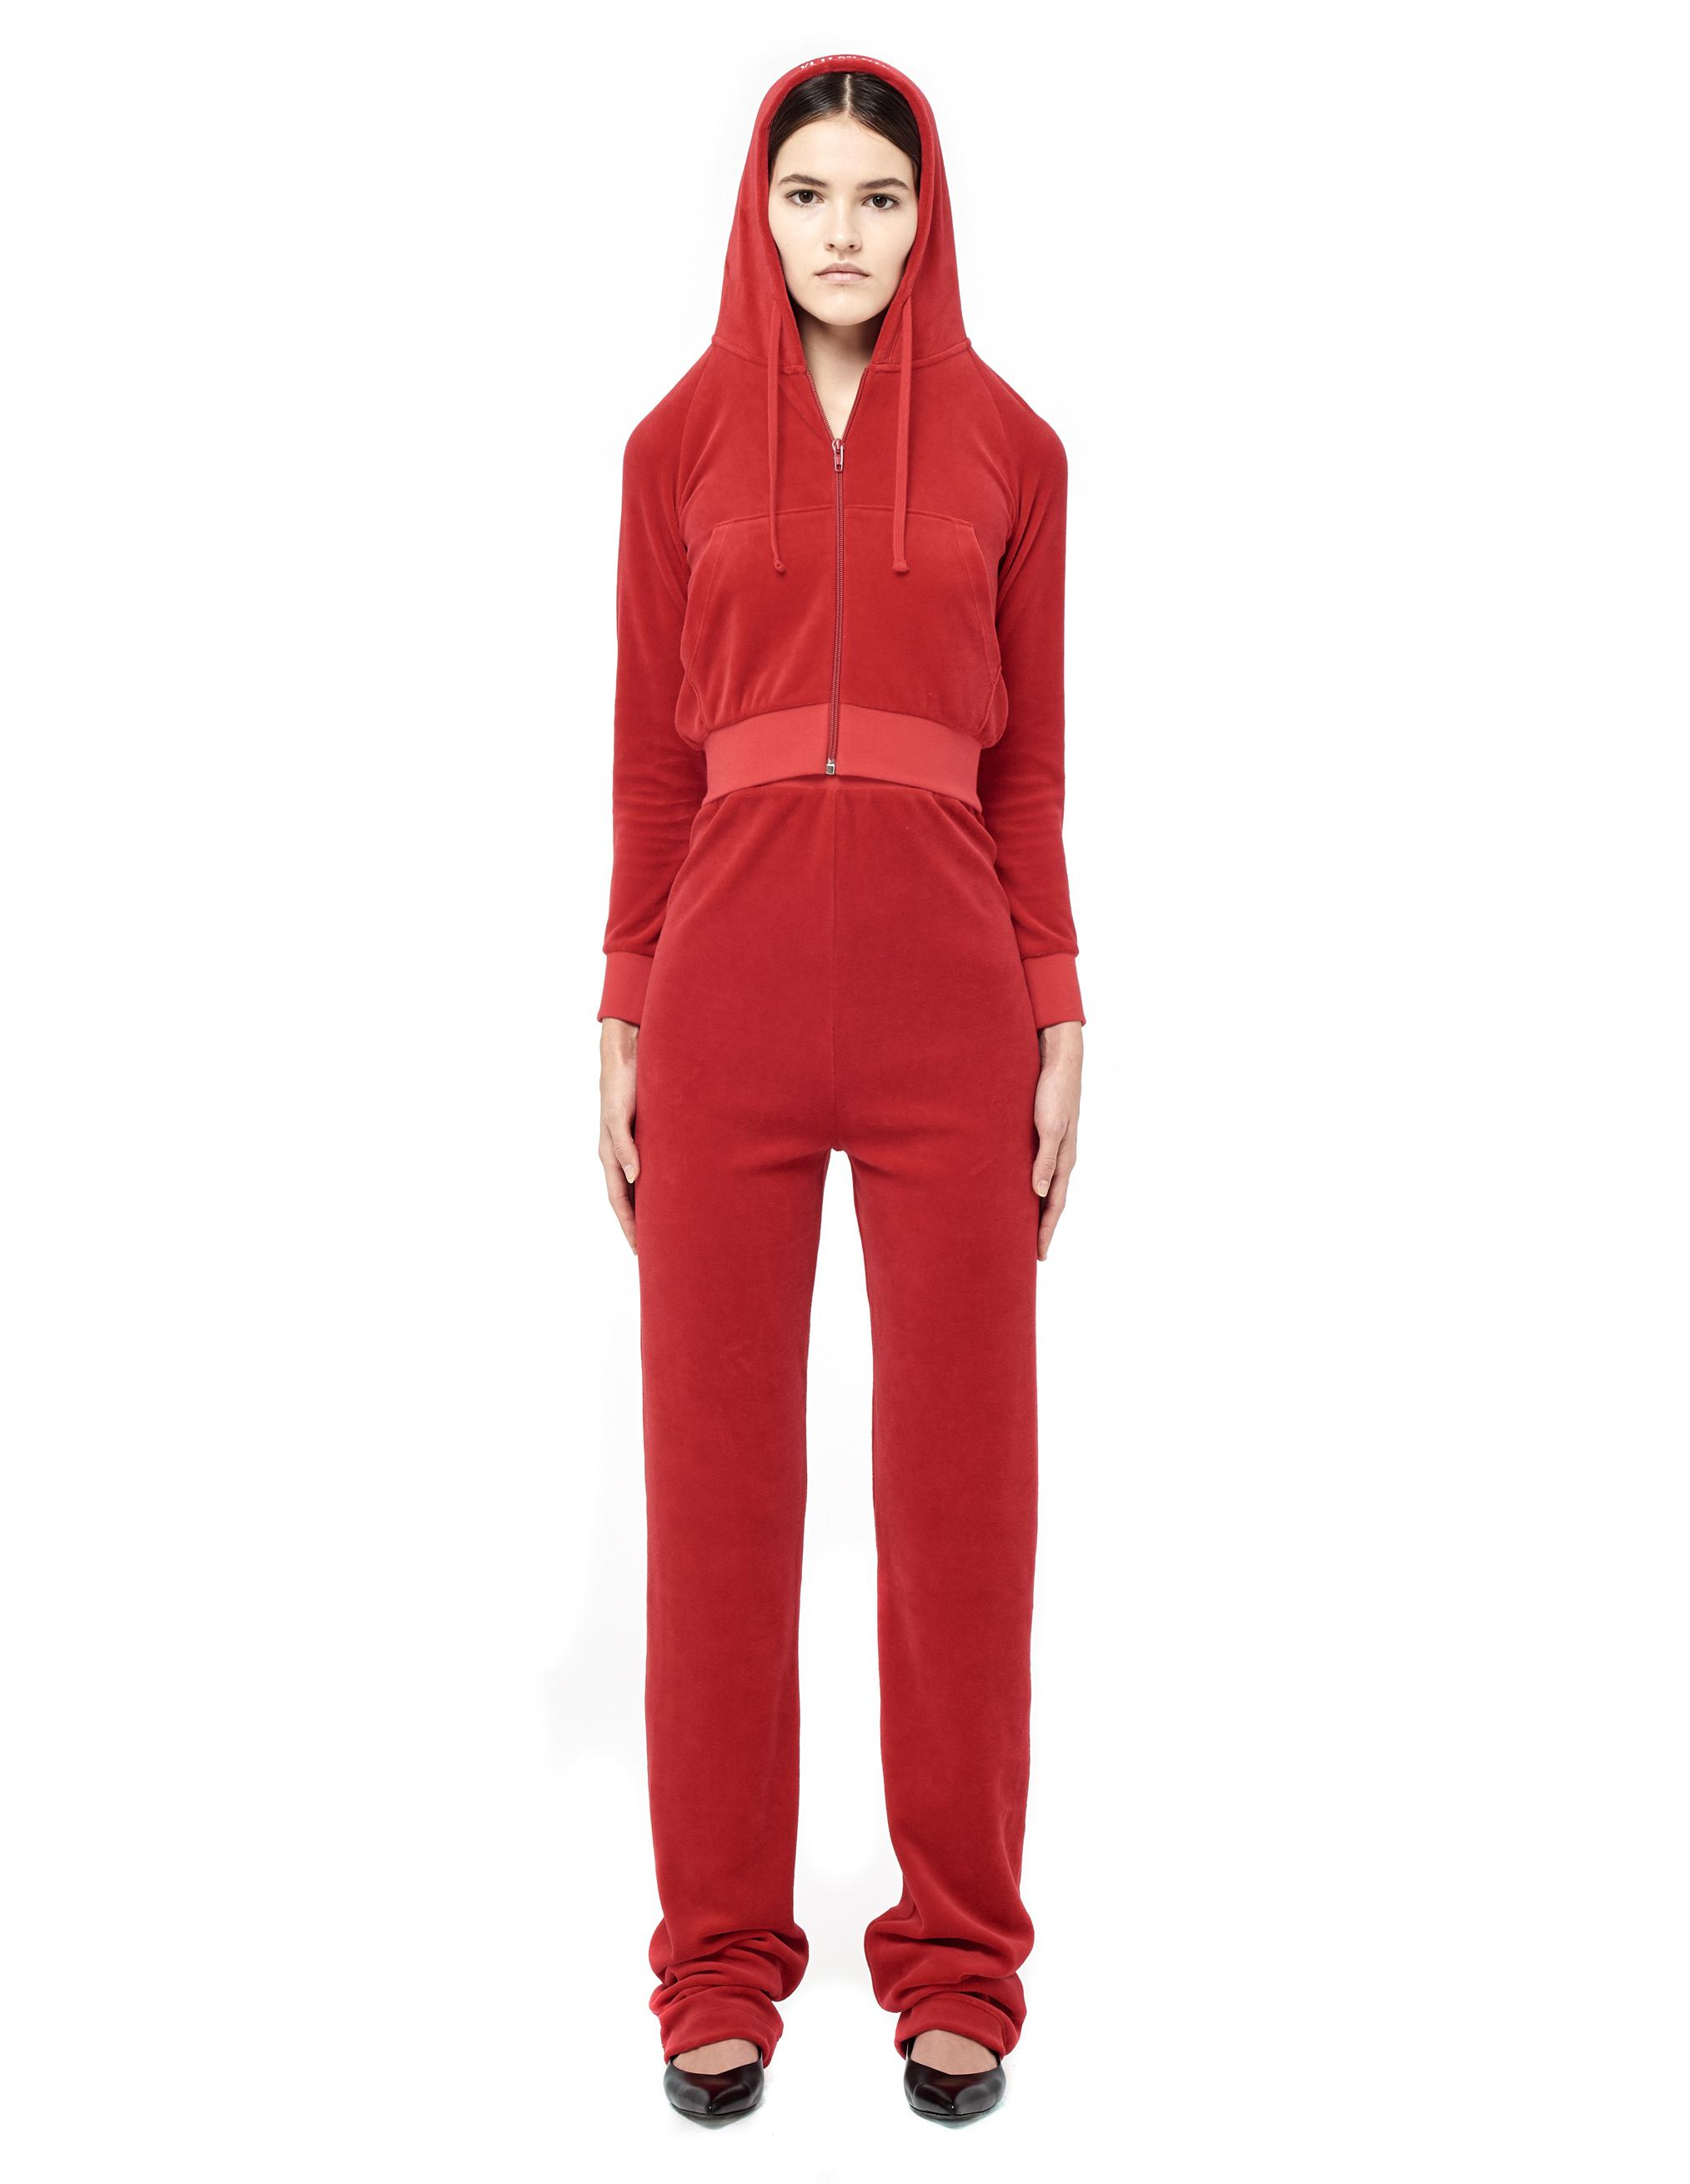 3060a7db0a54 Vetements Juicy Couture Velour Tracksuit in Red - Lyst